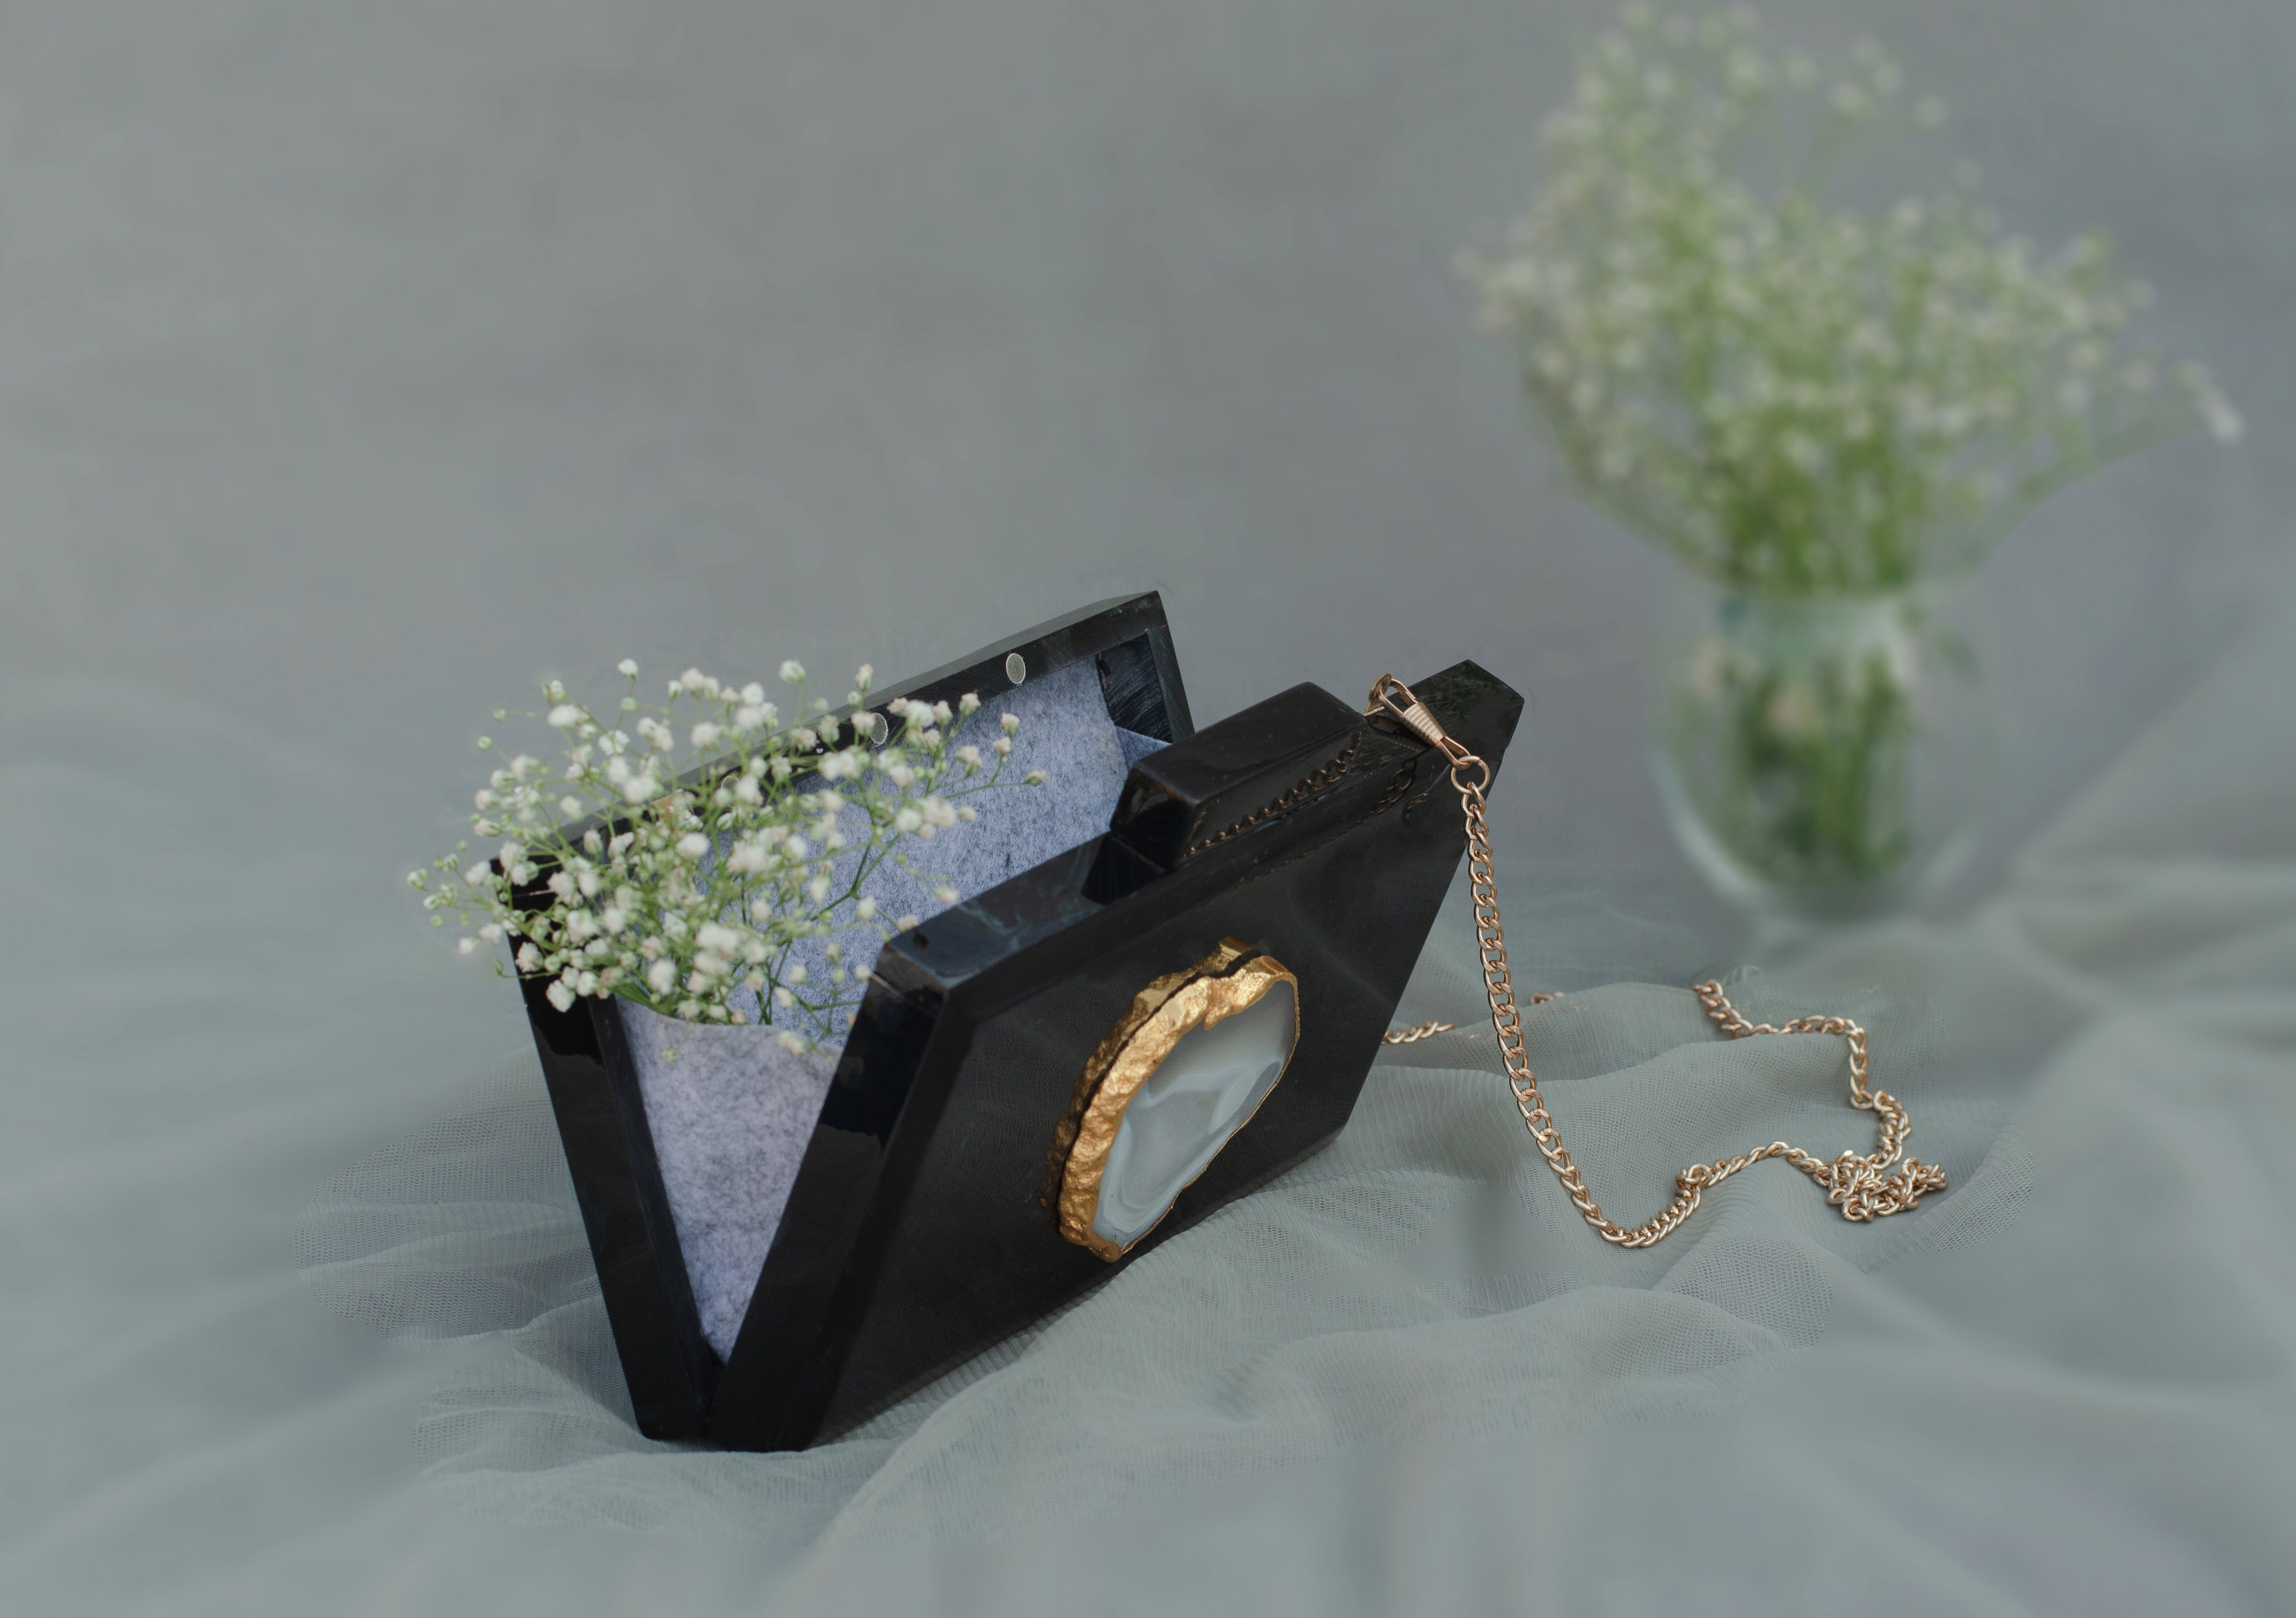 The Black Baroque Rectangular Clutch - SOUL EARTH